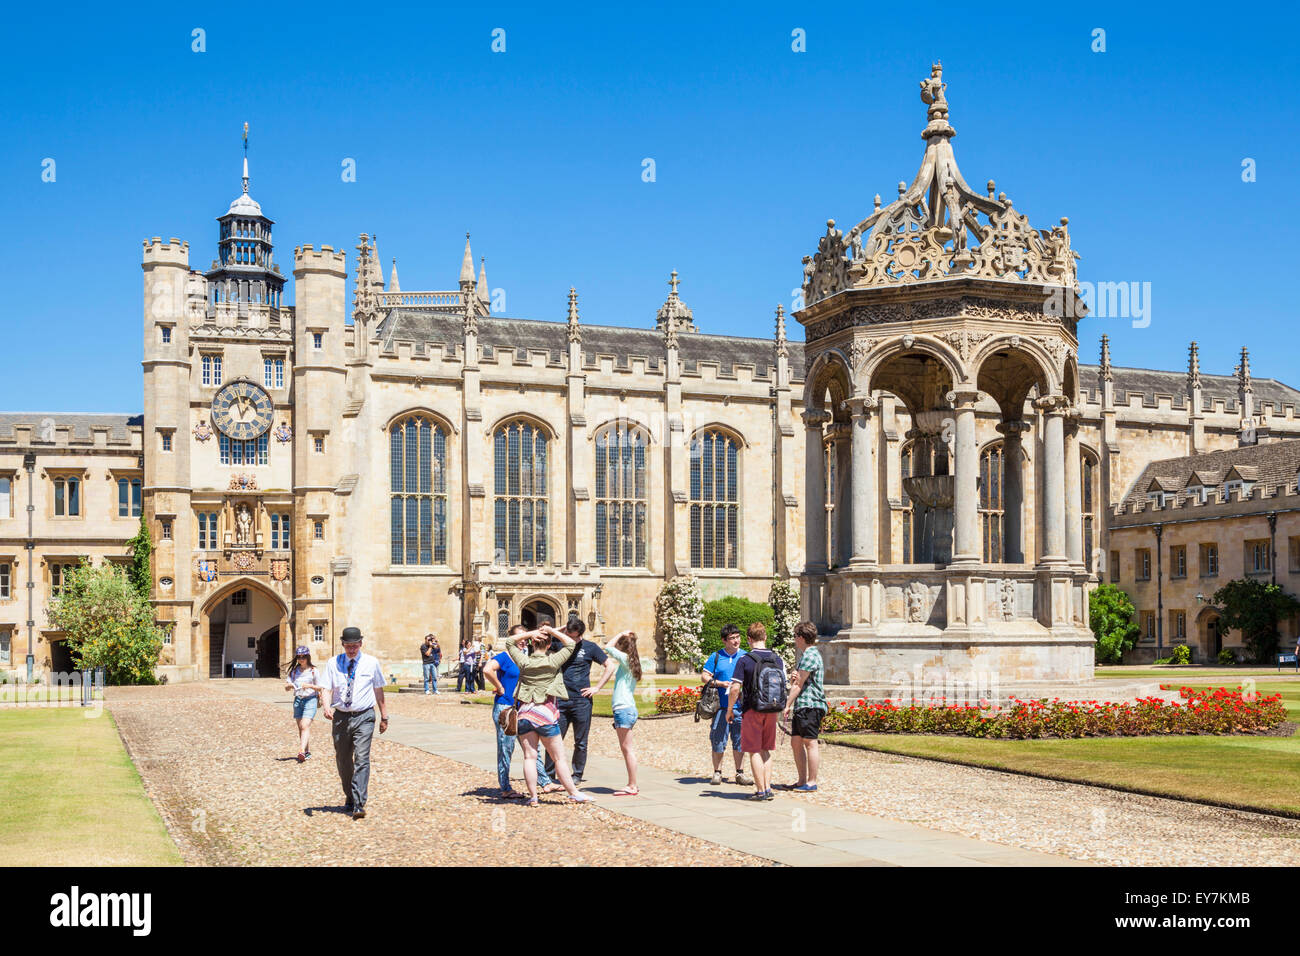 University Students in The Great Court Trinity College Cambridge University Cambridge Cambridgeshire England UK - Stock Image